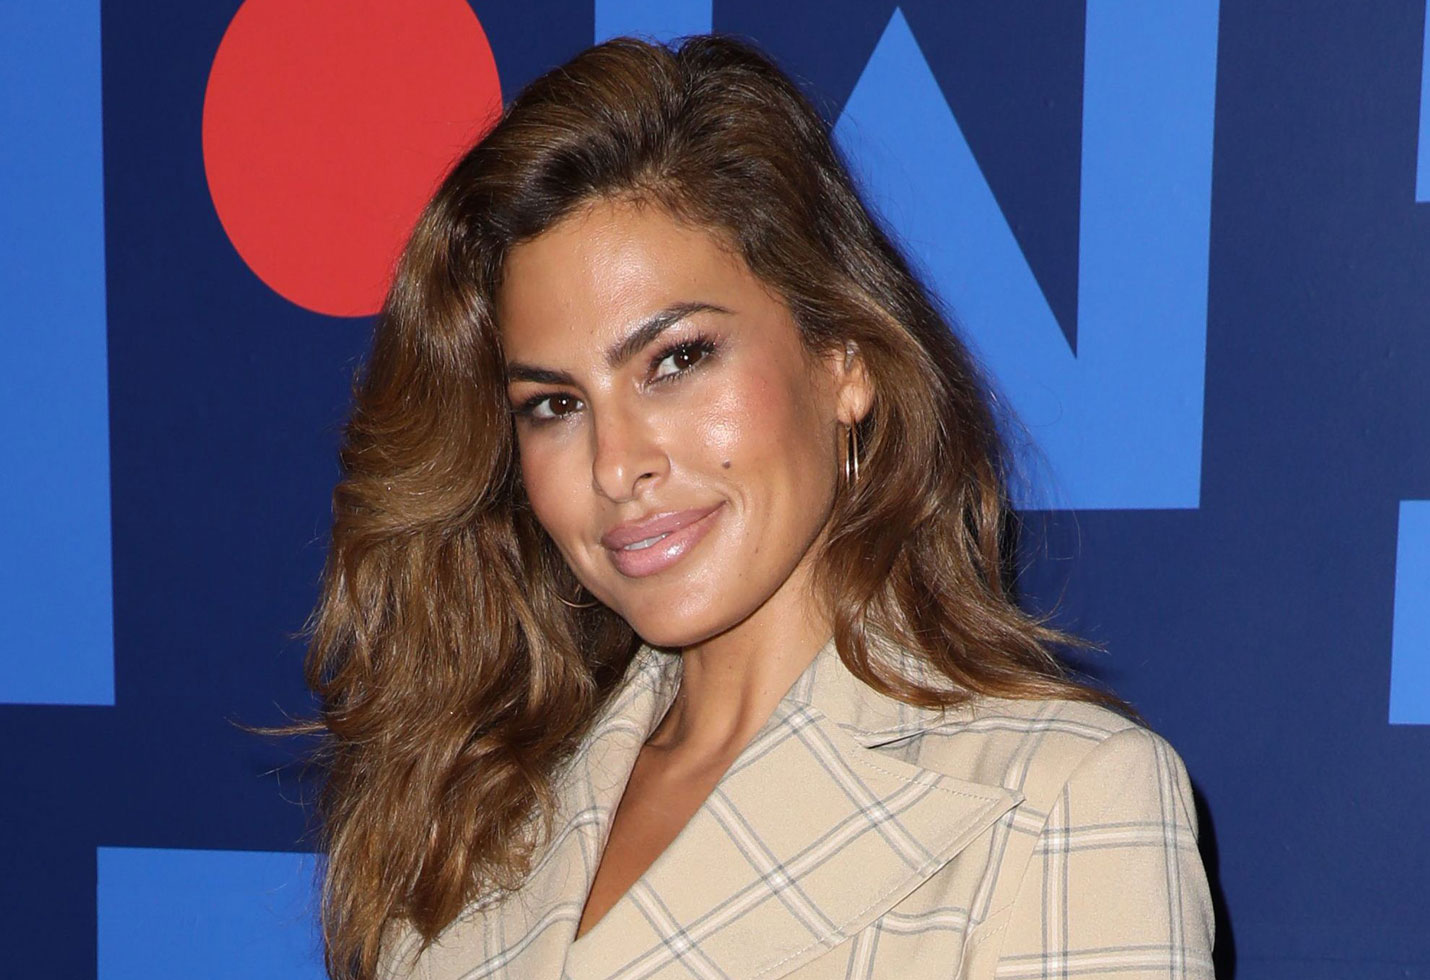 Eva Mendes Gets Her Hair Cut At Supercuts See The Shocking Photo